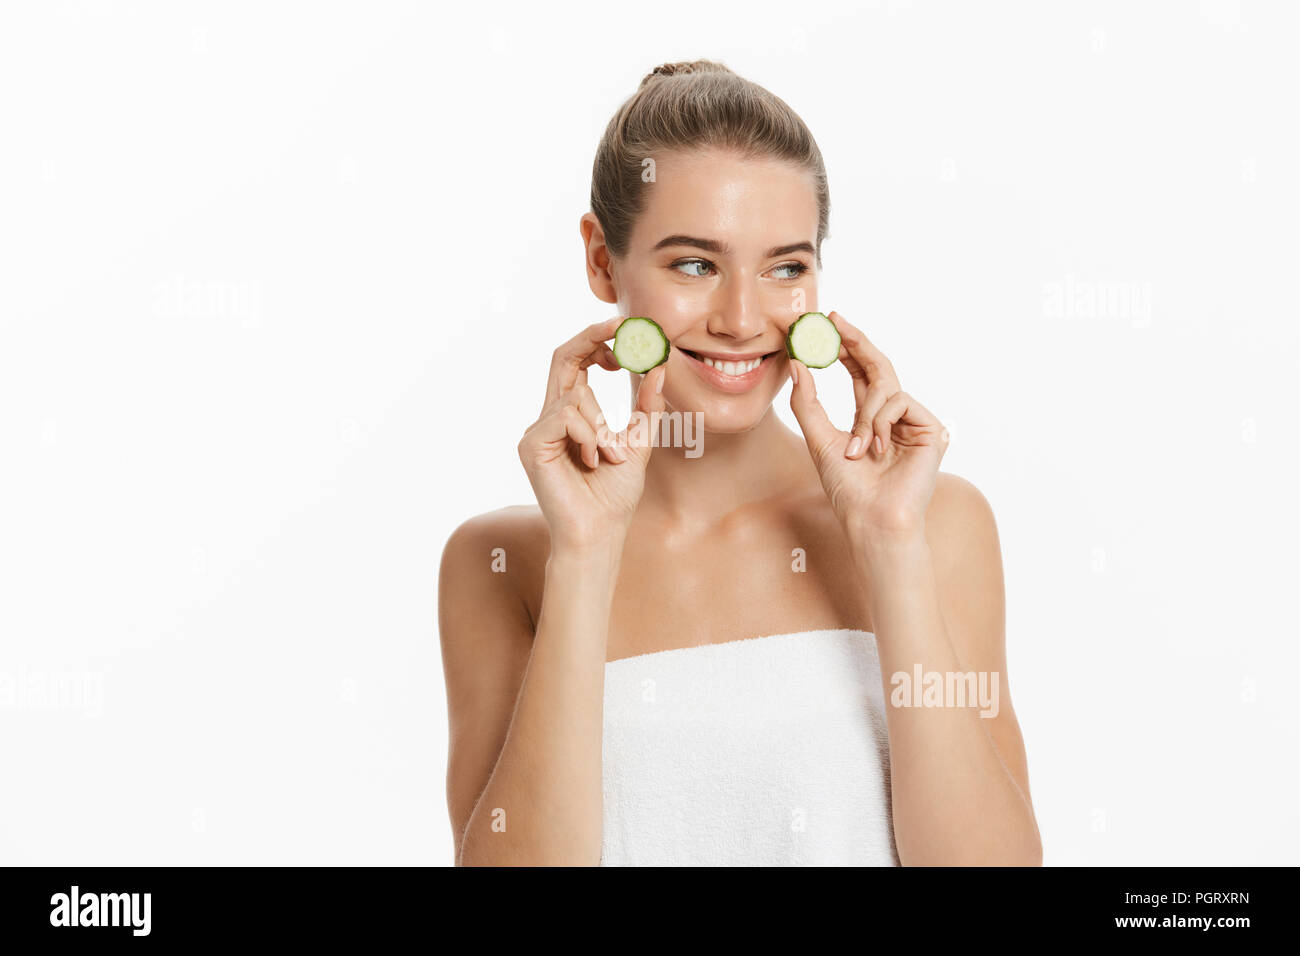 Young woman holding cucumber slices isolated on white background - Stock Image